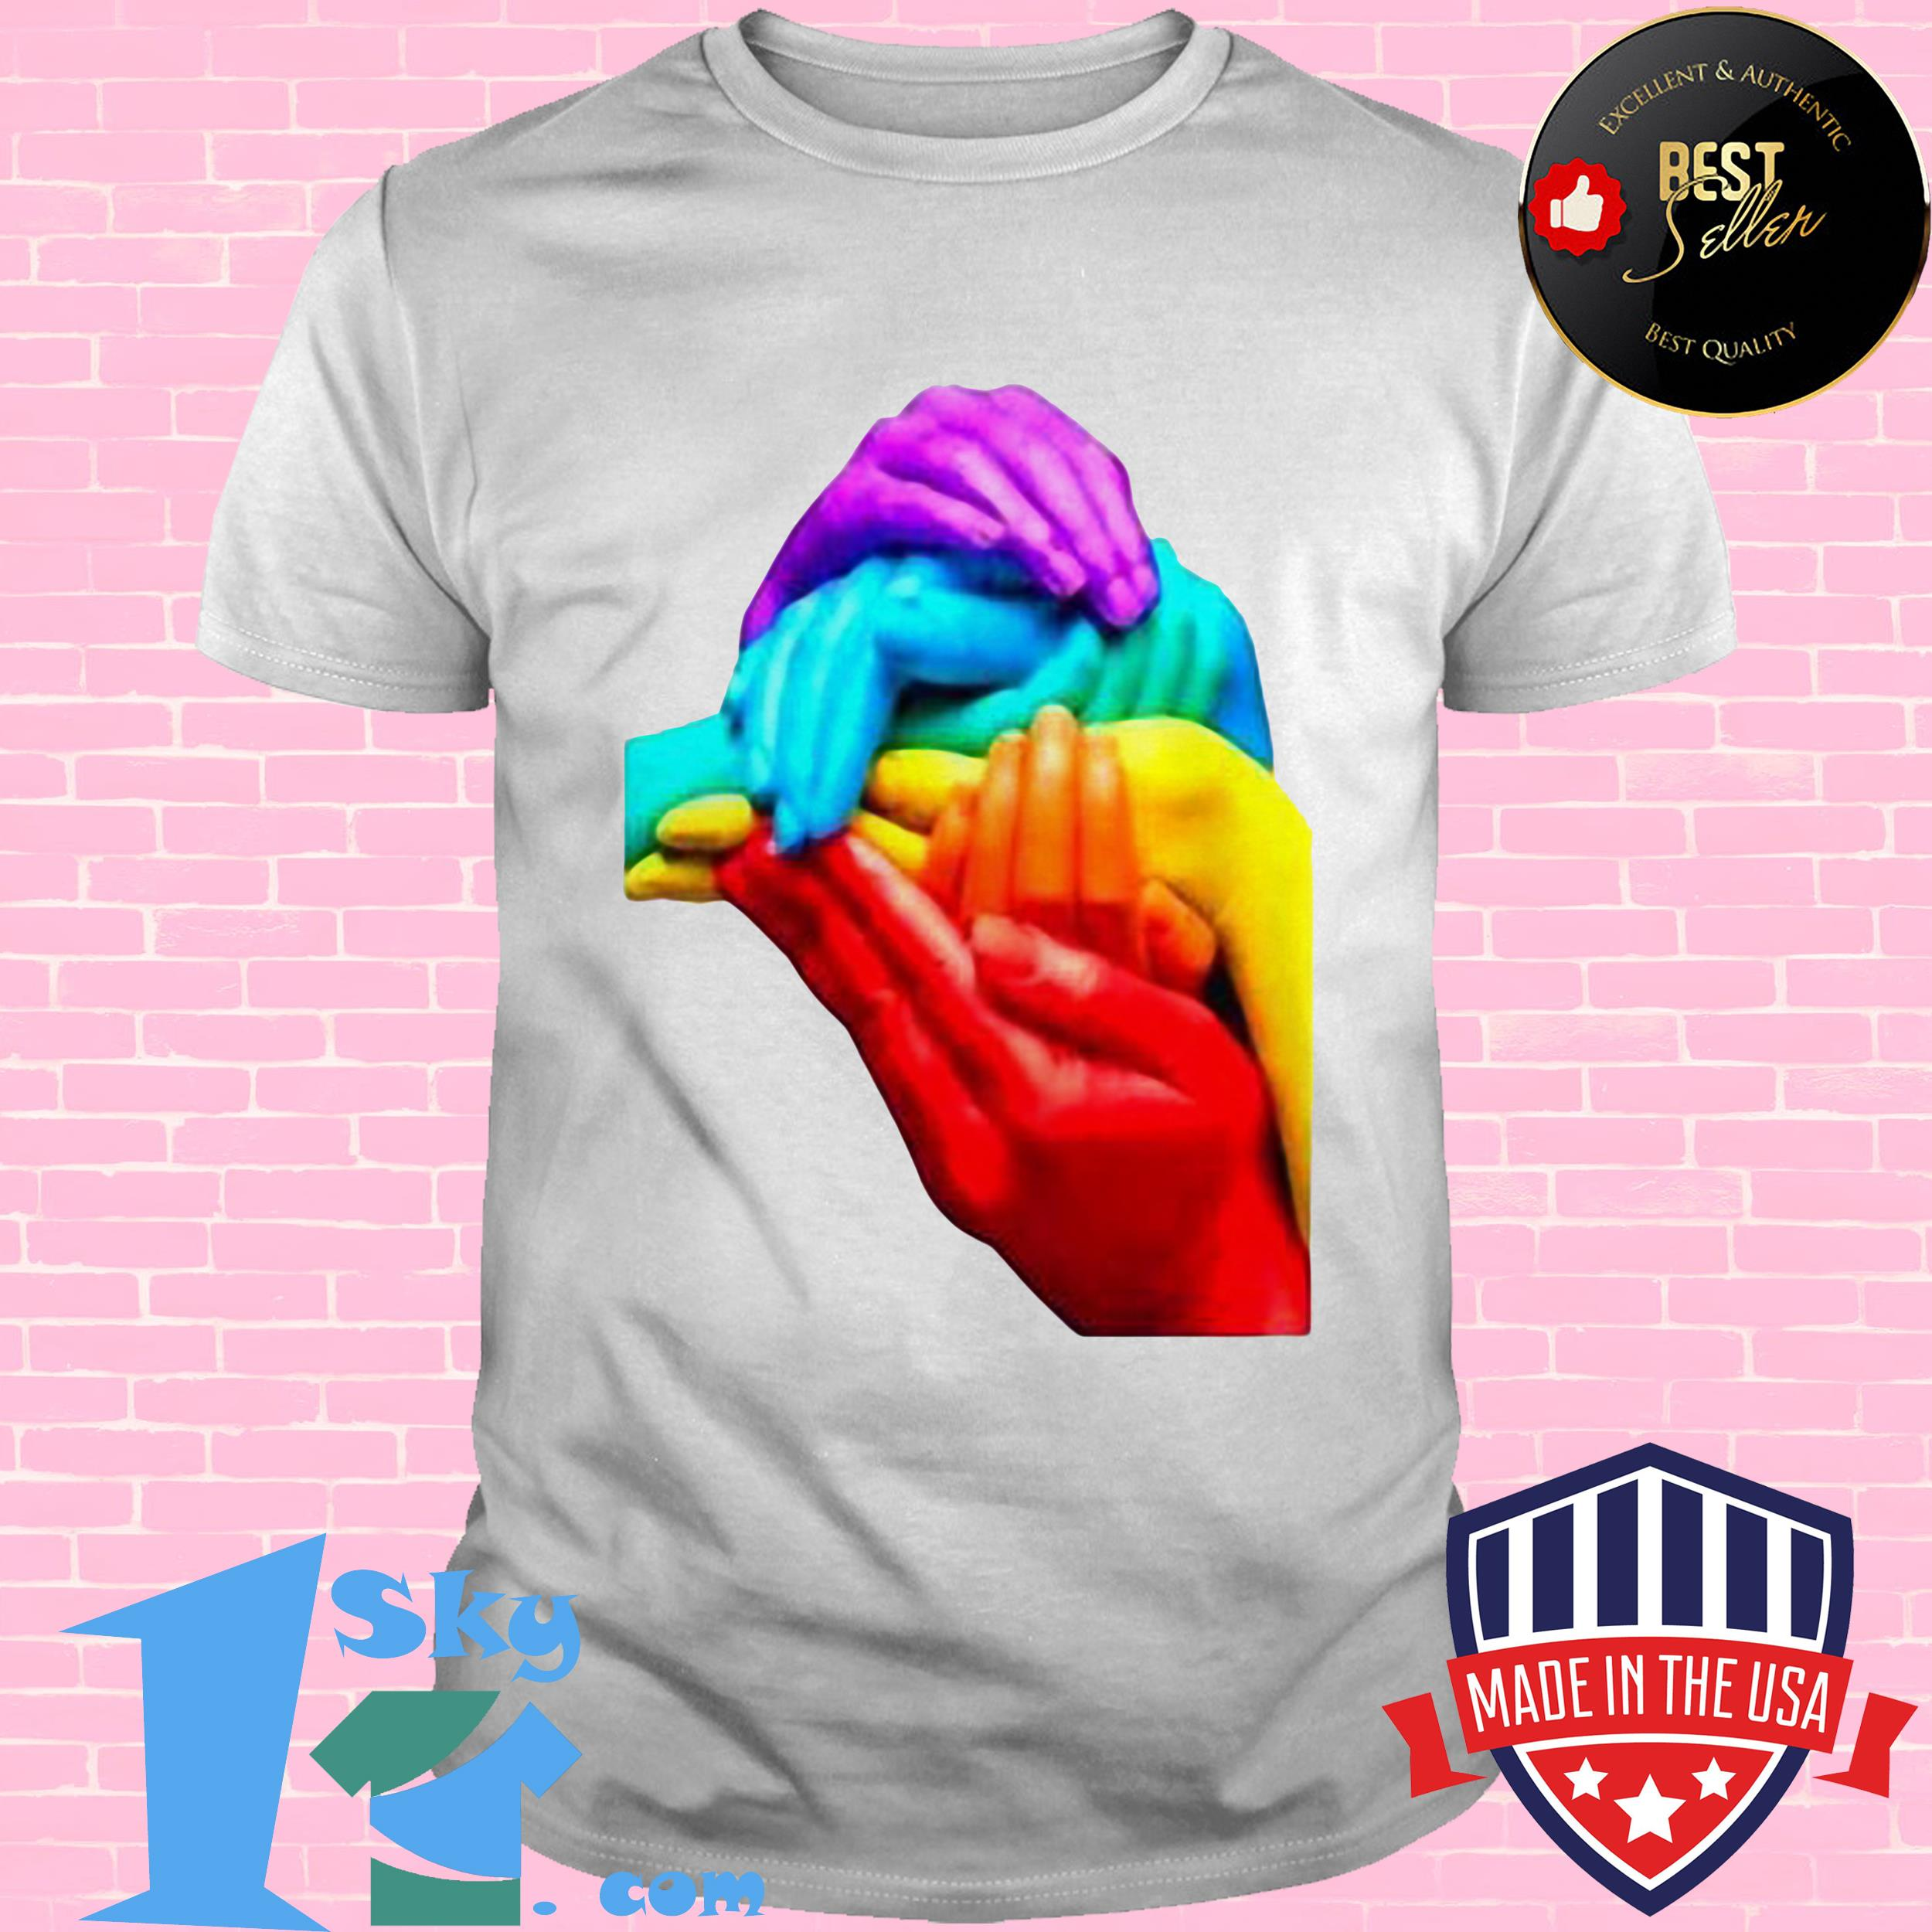 hands colourful gay pride lgbt london soho cool rainbow retro shirt - Hands Colourful Gay Pride LGBT London Soho Cool Rainbow Retro Shirt